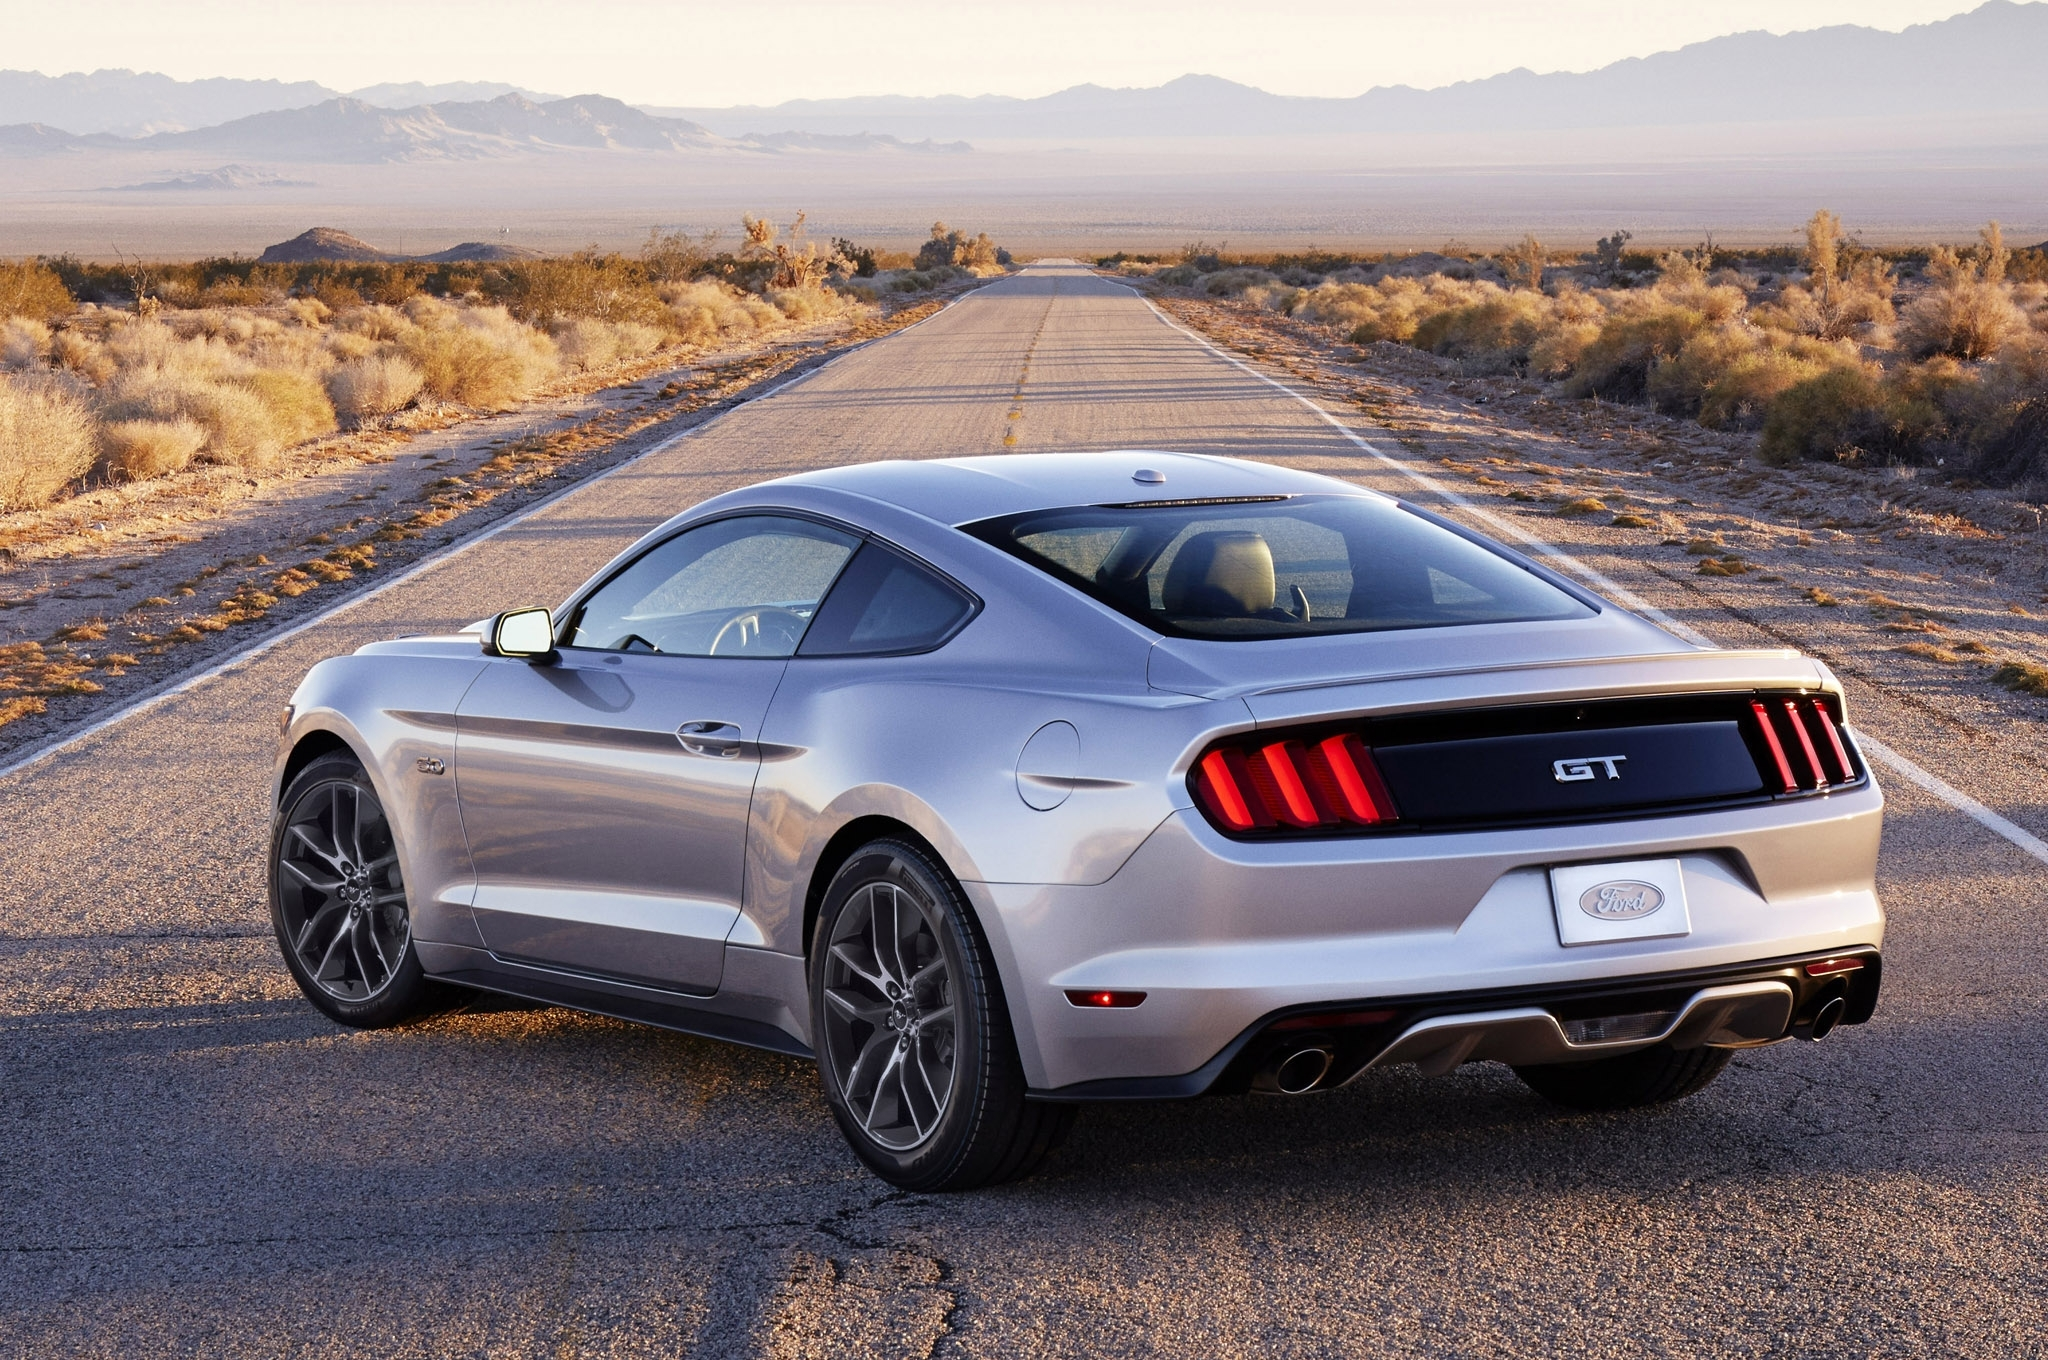 2016 Ford Mustang #9